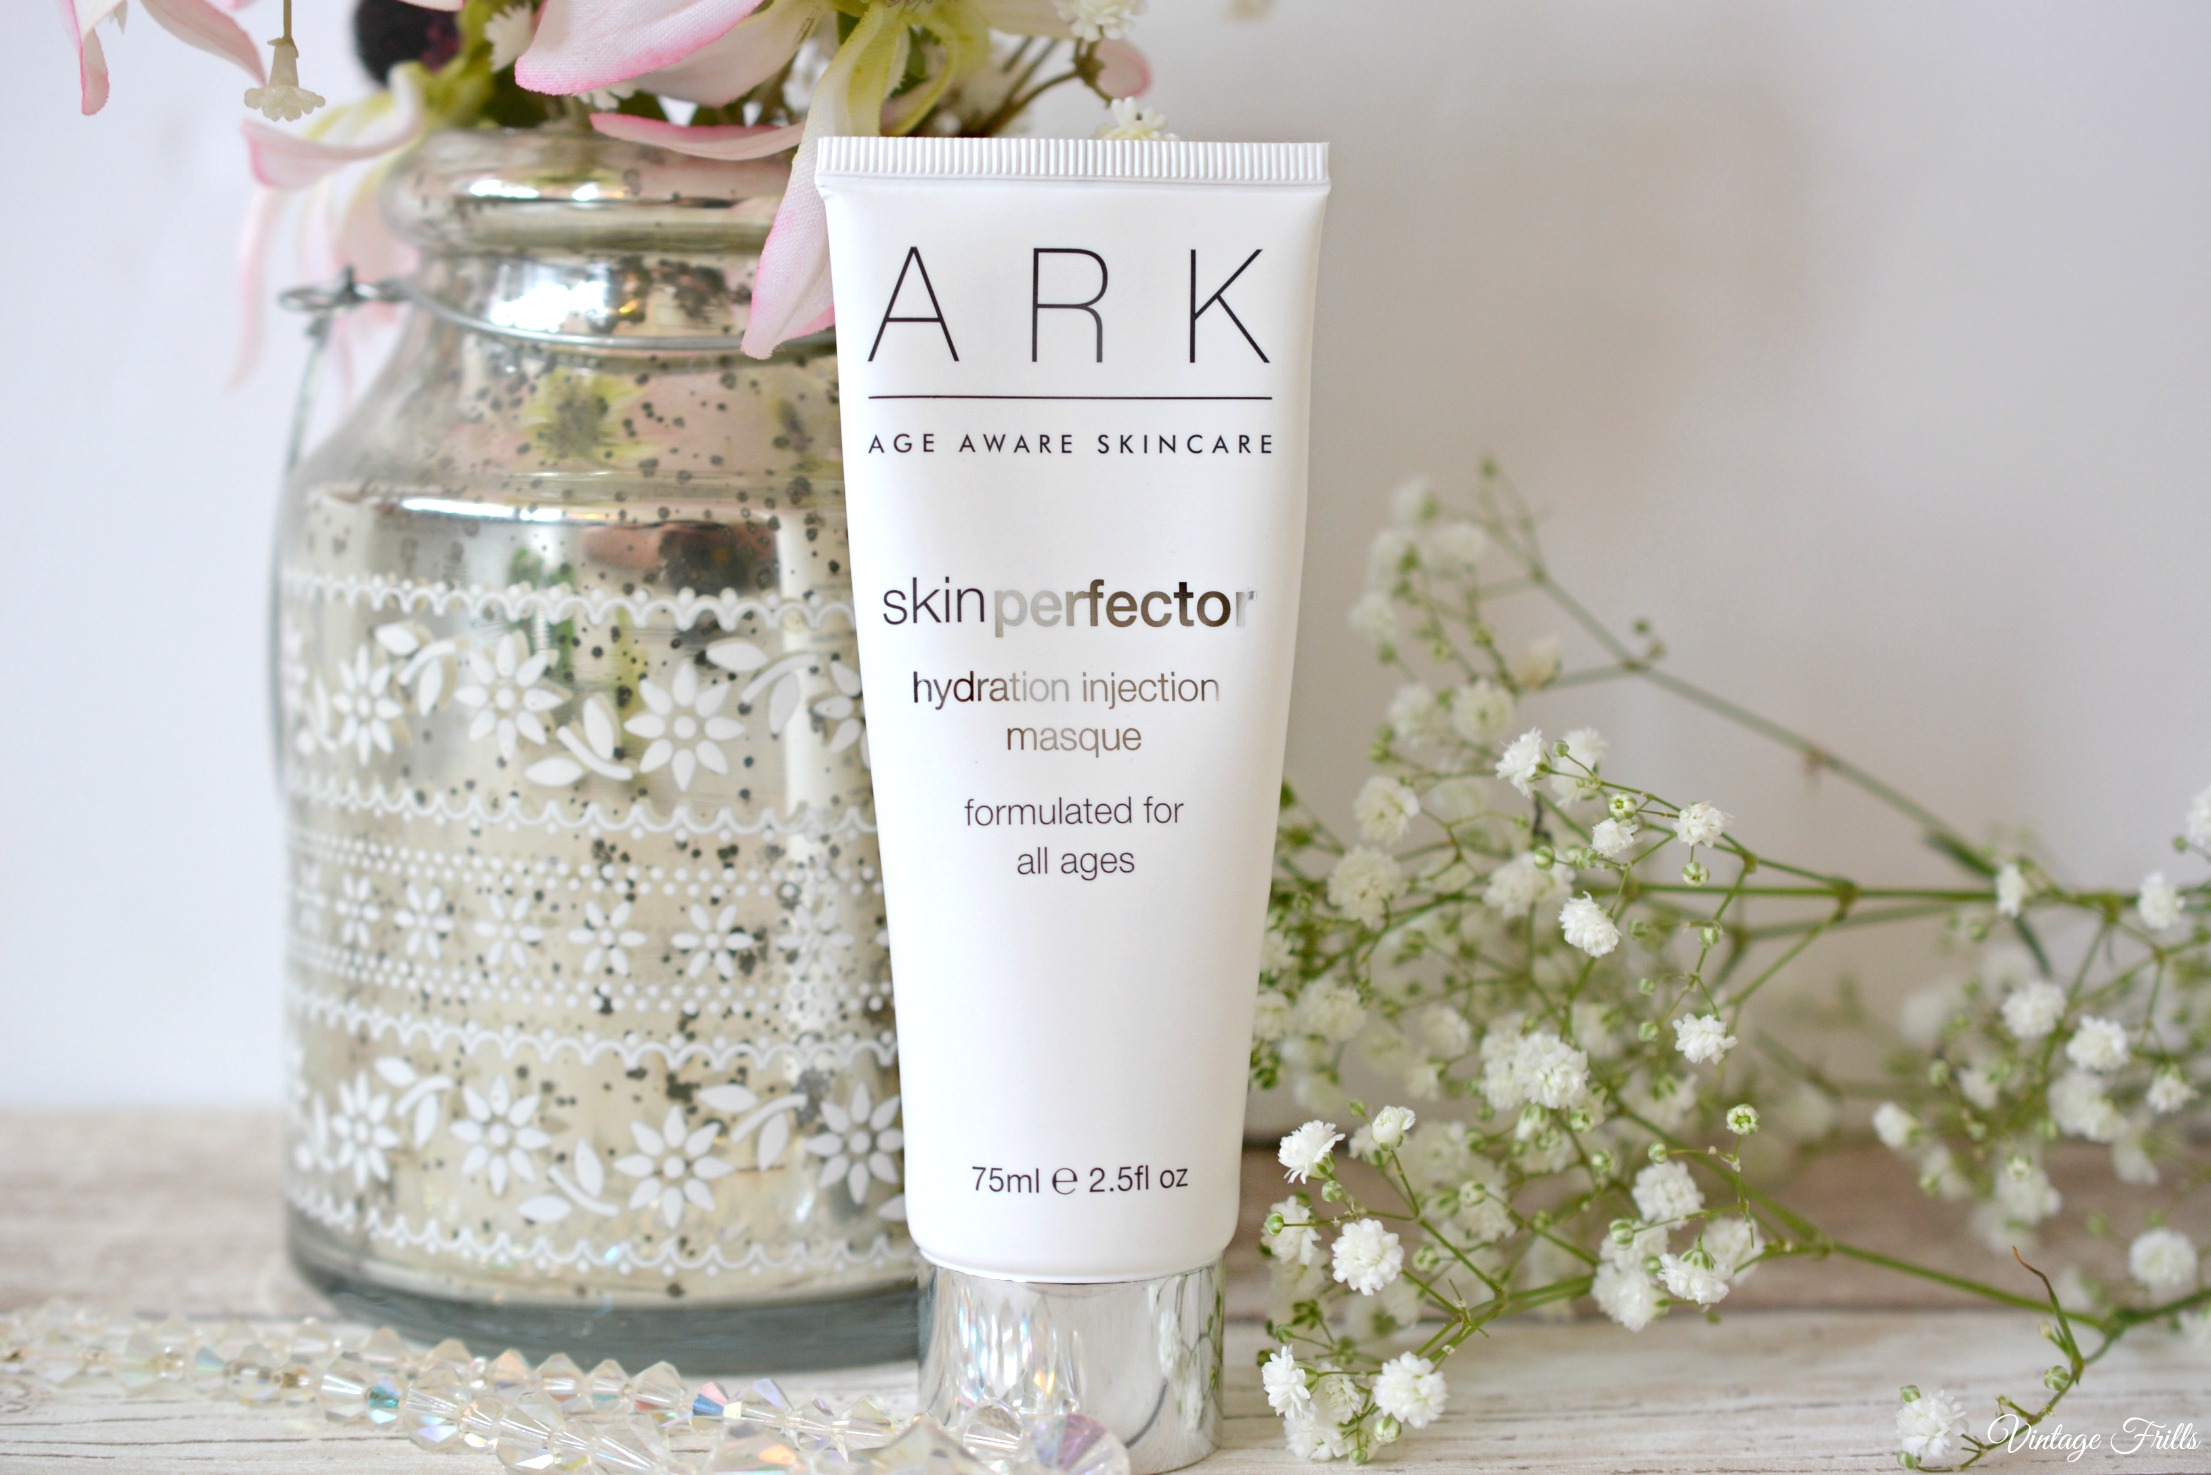 ARK Skin Perfector Mask Review